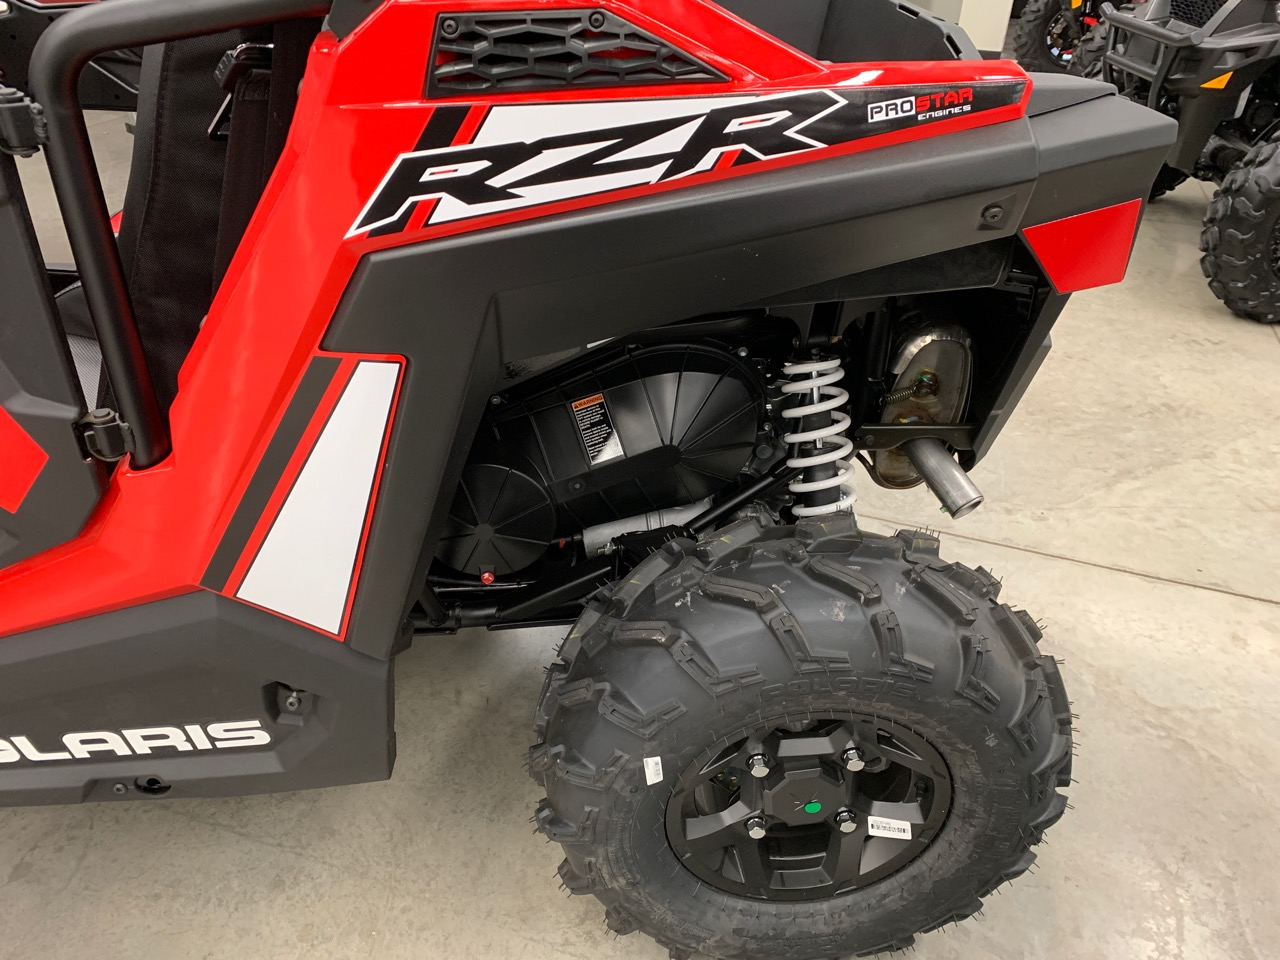 Inventory - Action Power Sports